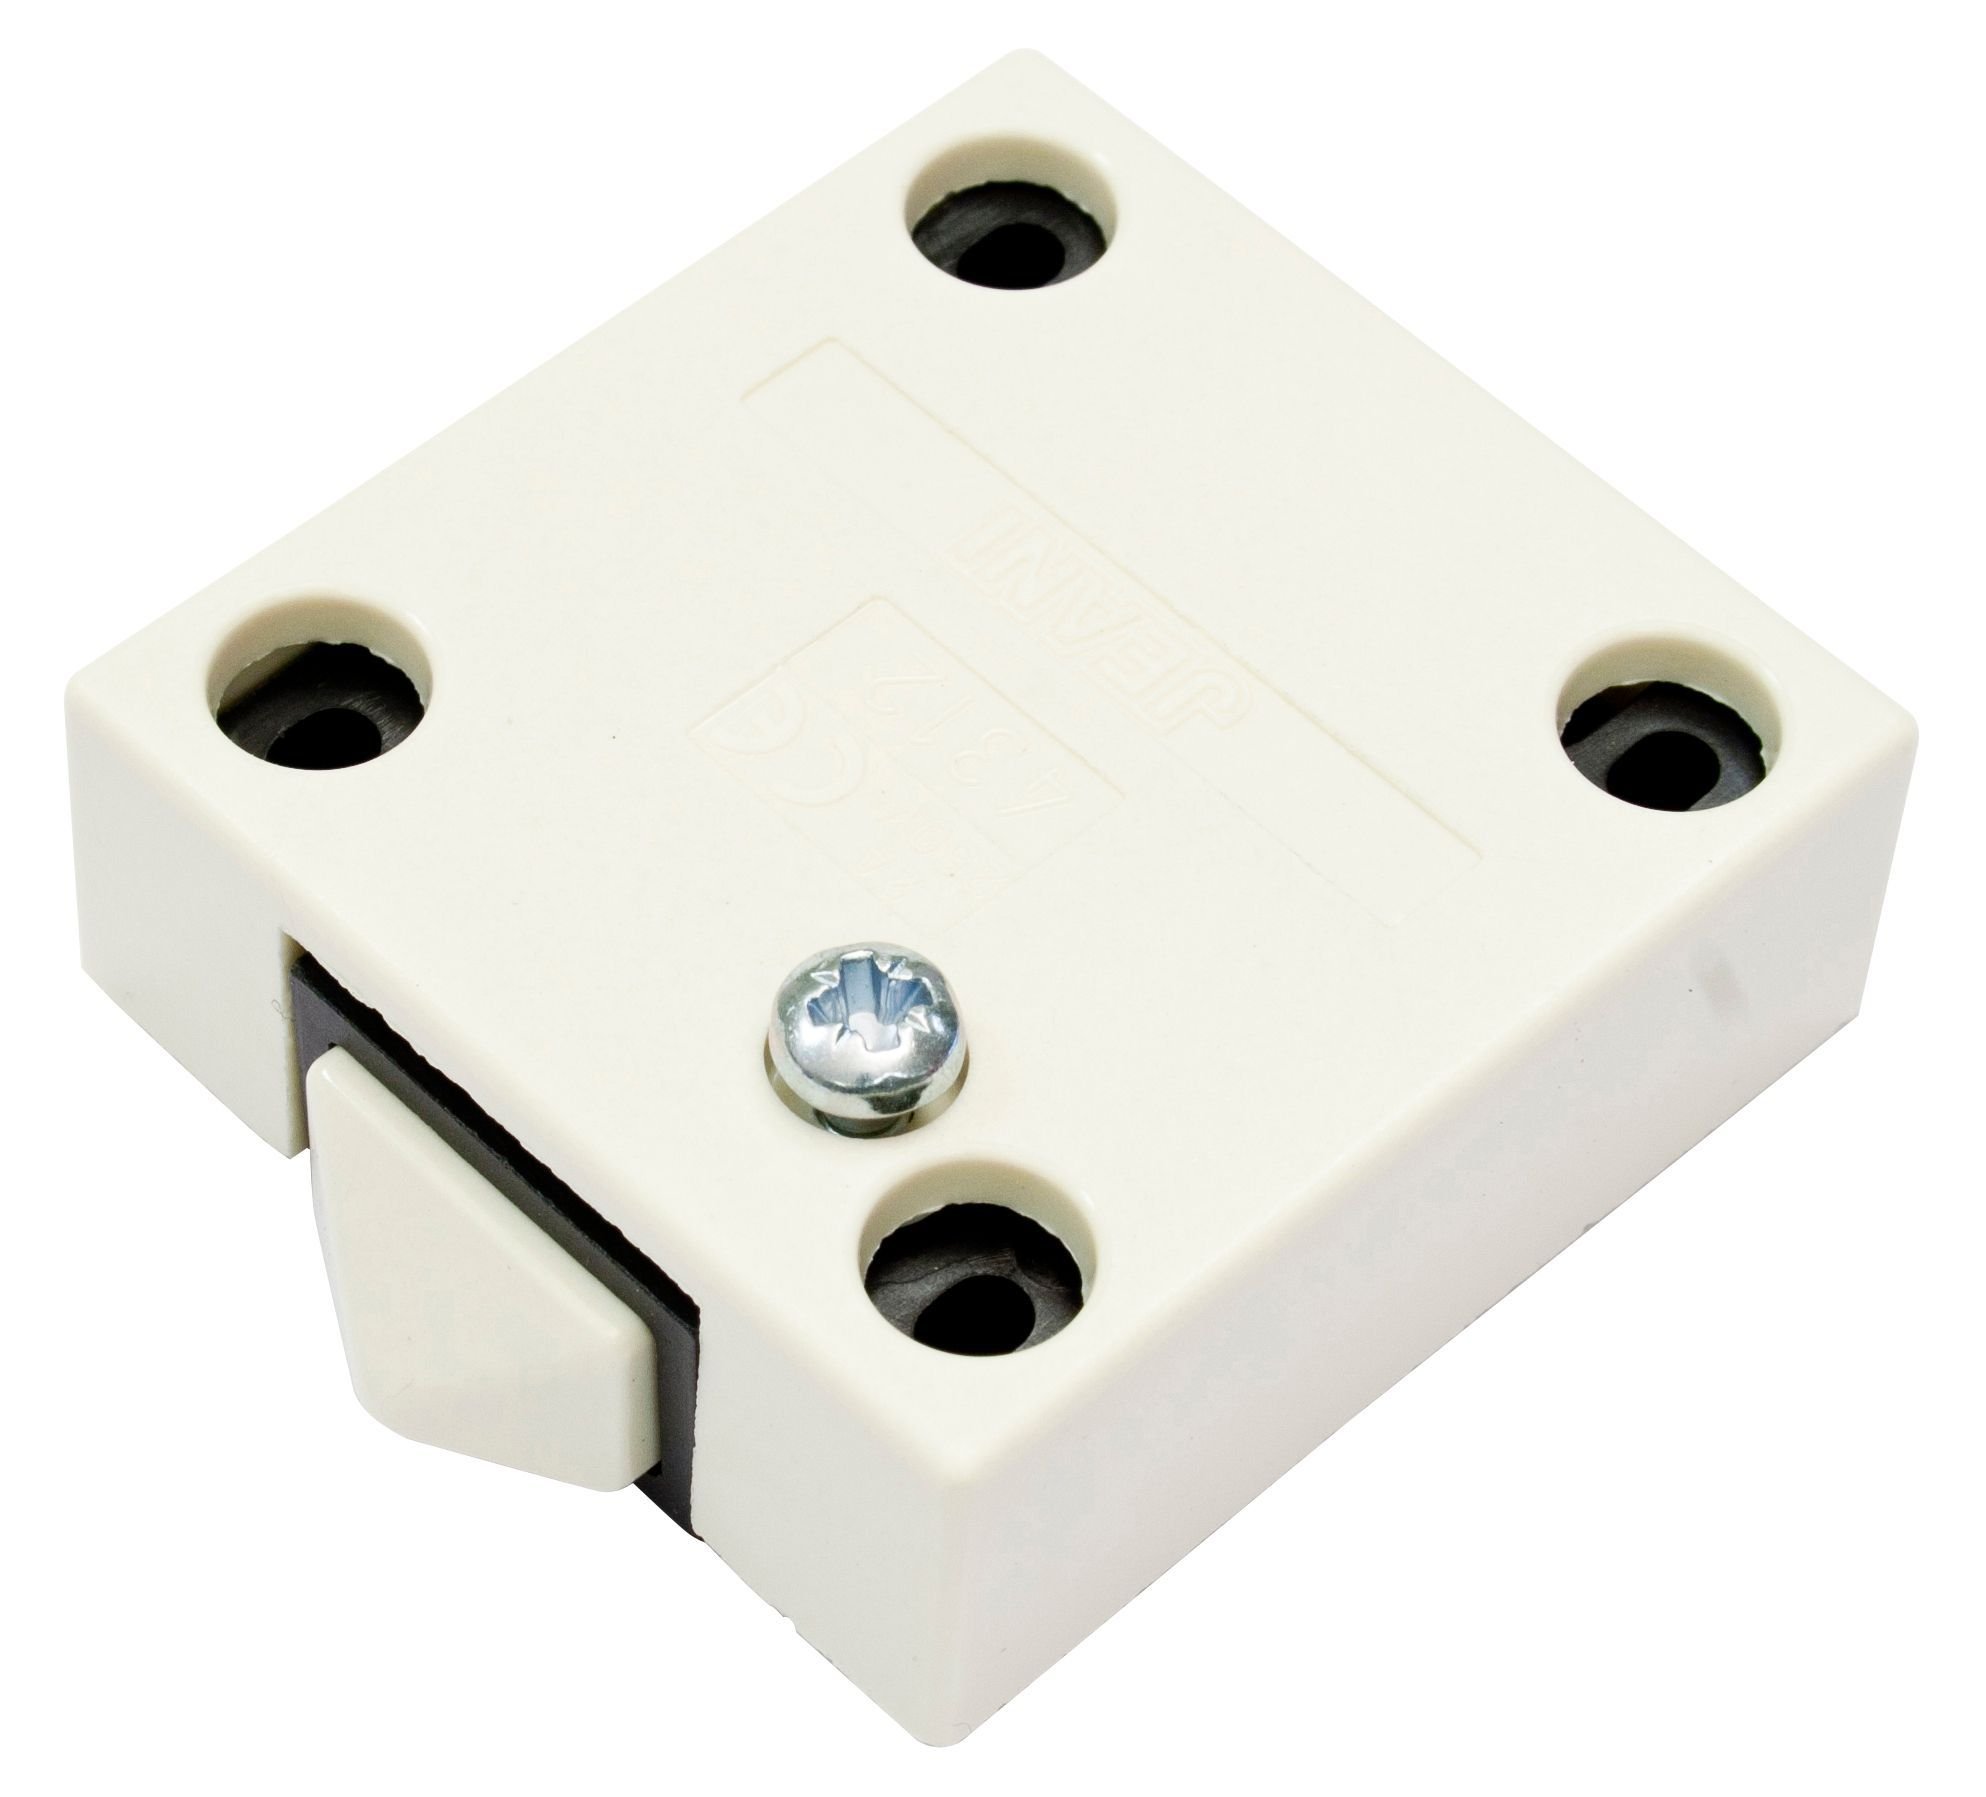 sc 1 st  Bu0026Q & Bu0026Q Cream Door Operated Cabinet Switch | Departments | DIY at Bu0026Q